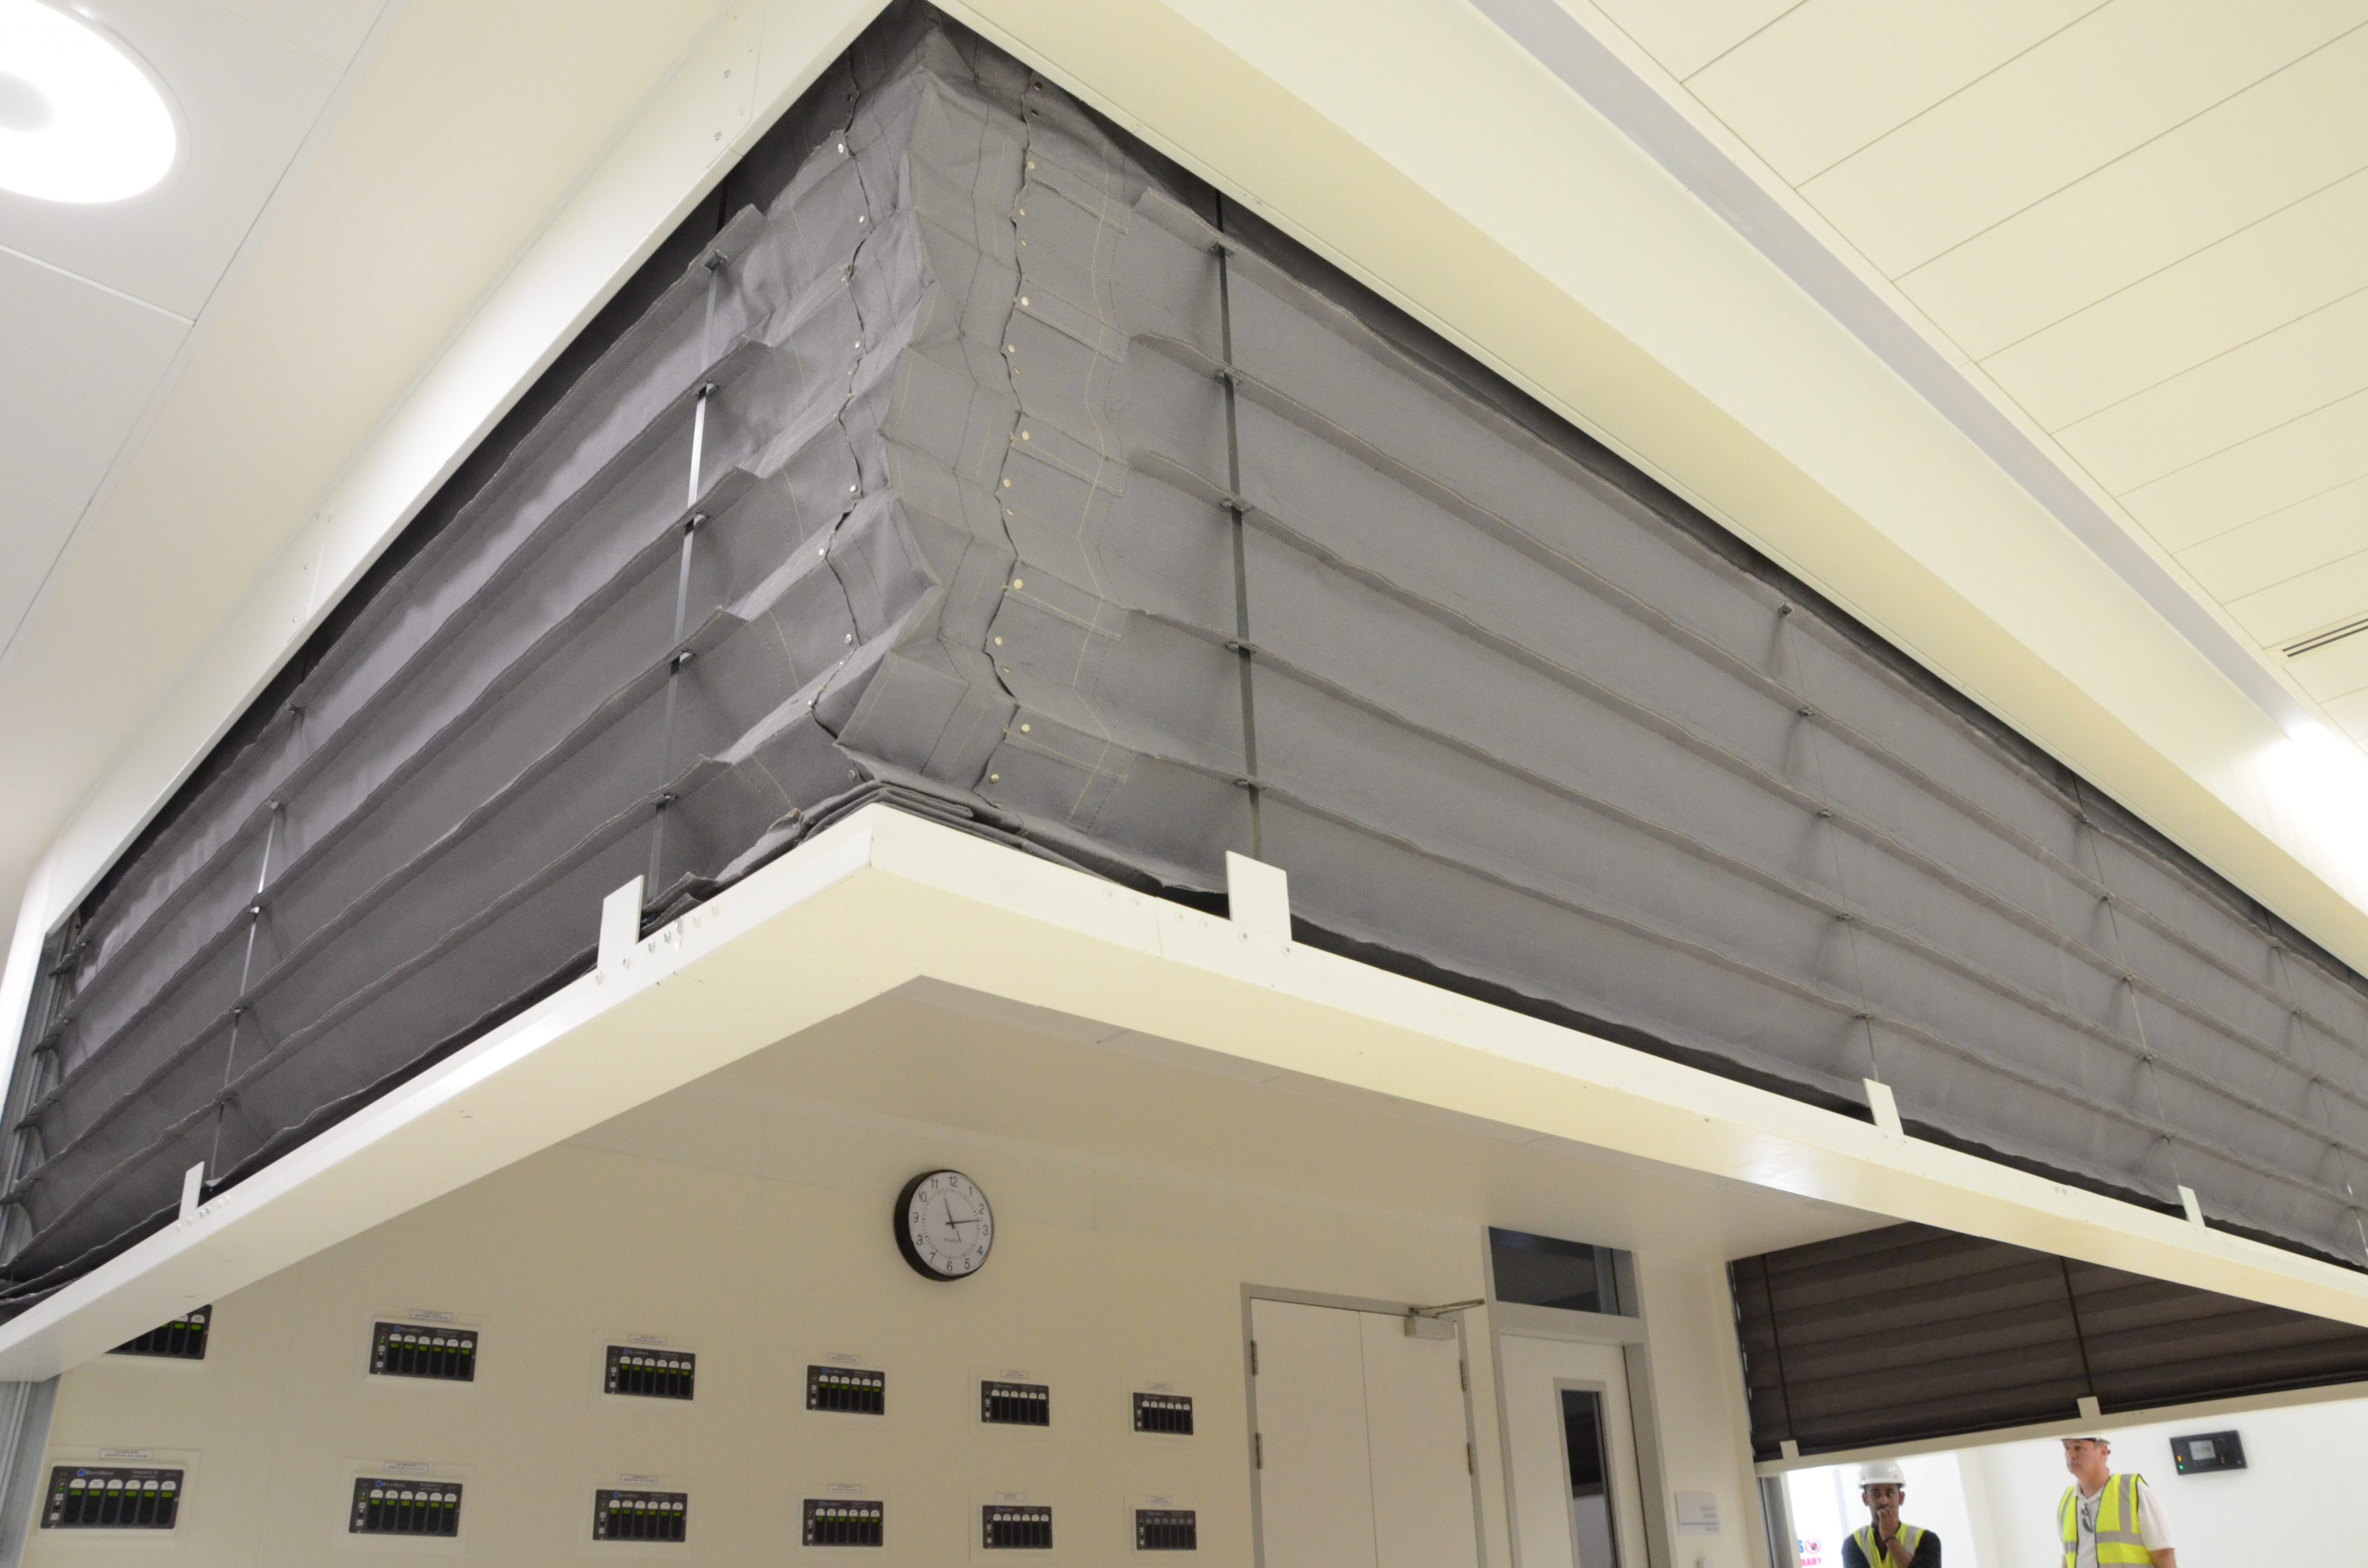 FireMaster Concertina Fire Curtain in a hospital